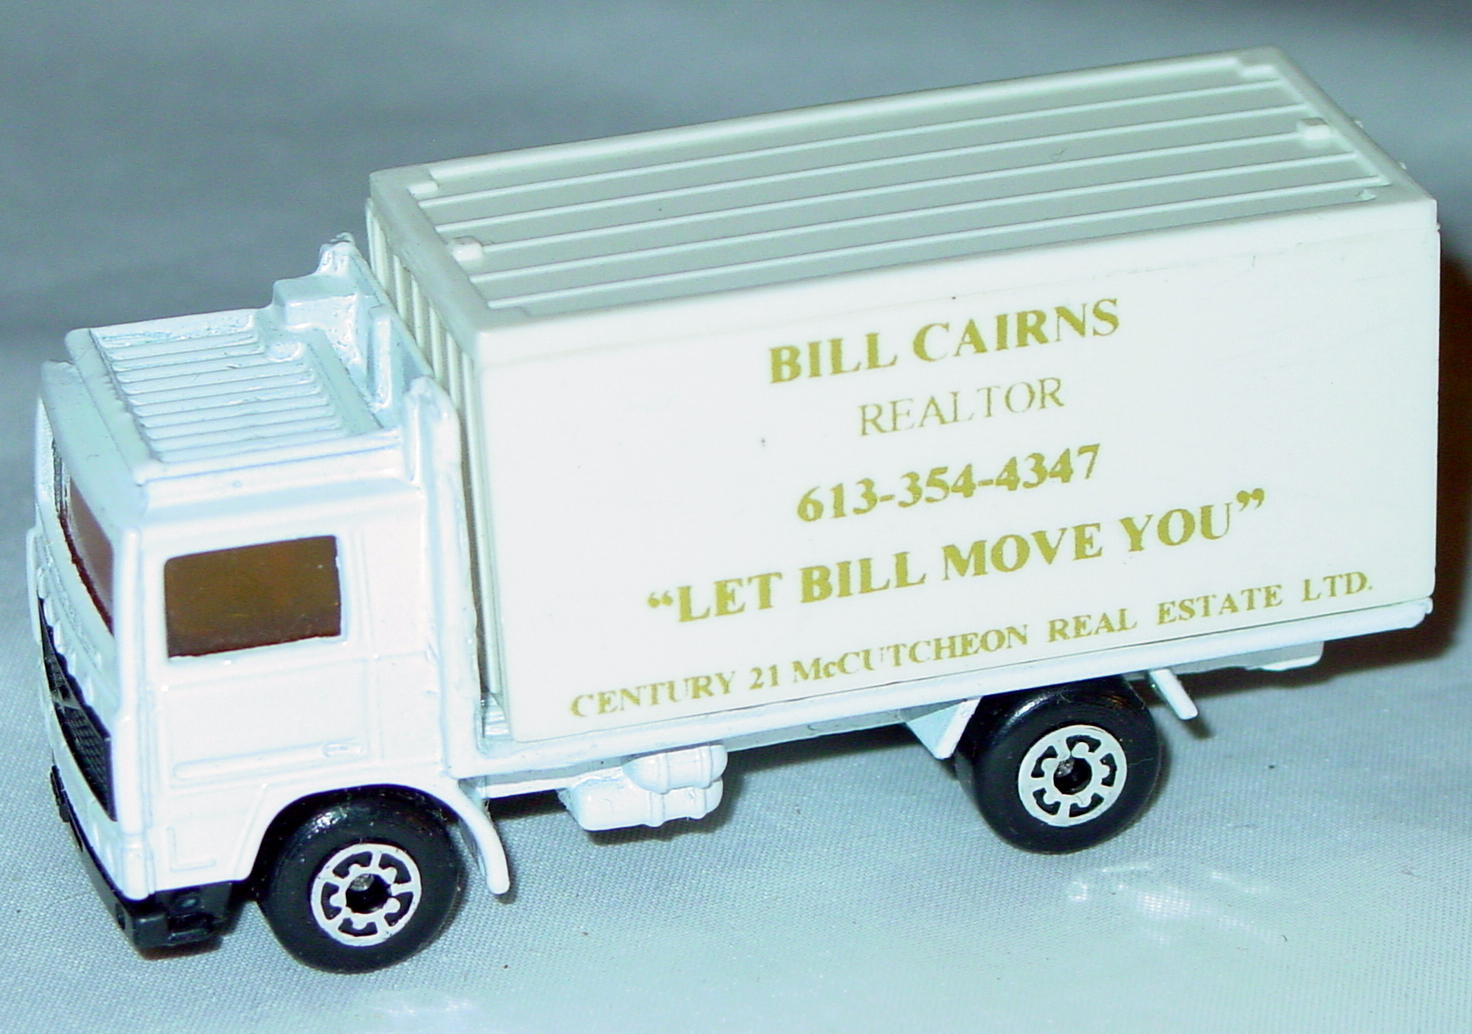 ASAP-CCI 20 D 52 - Volvo Cont Truck White and White Bill Cairns made in China ASAP